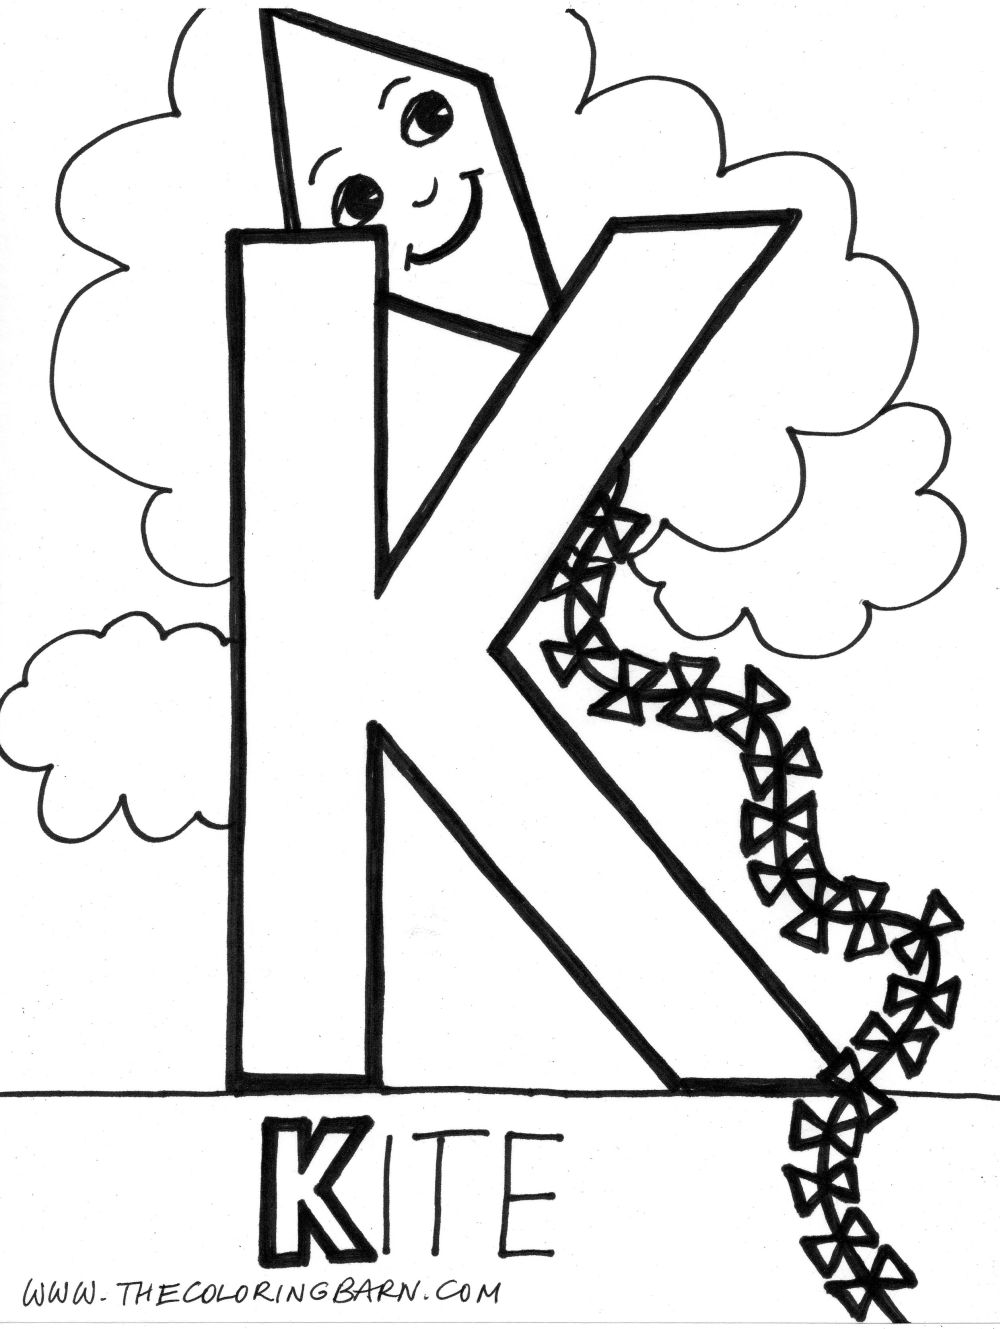 letter k coloring pages only coloring pages. Black Bedroom Furniture Sets. Home Design Ideas